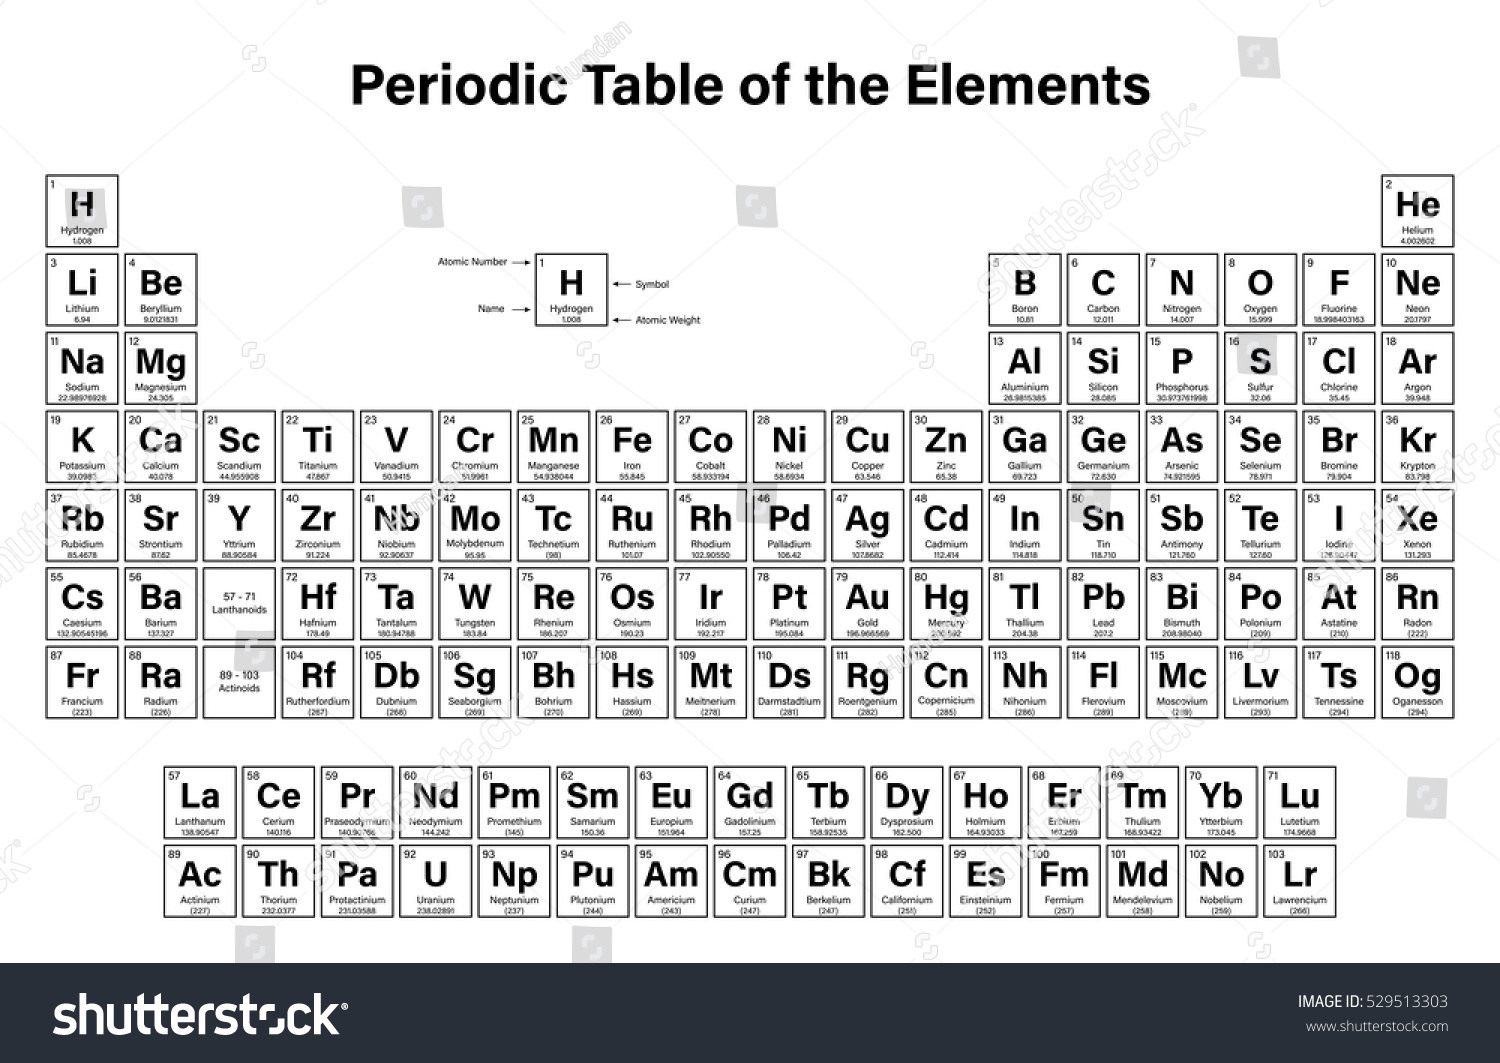 Periodic table elements vector illustration shows stock vector periodic table of the elements vector illustration shows atomic number symbol name and gamestrikefo Choice Image